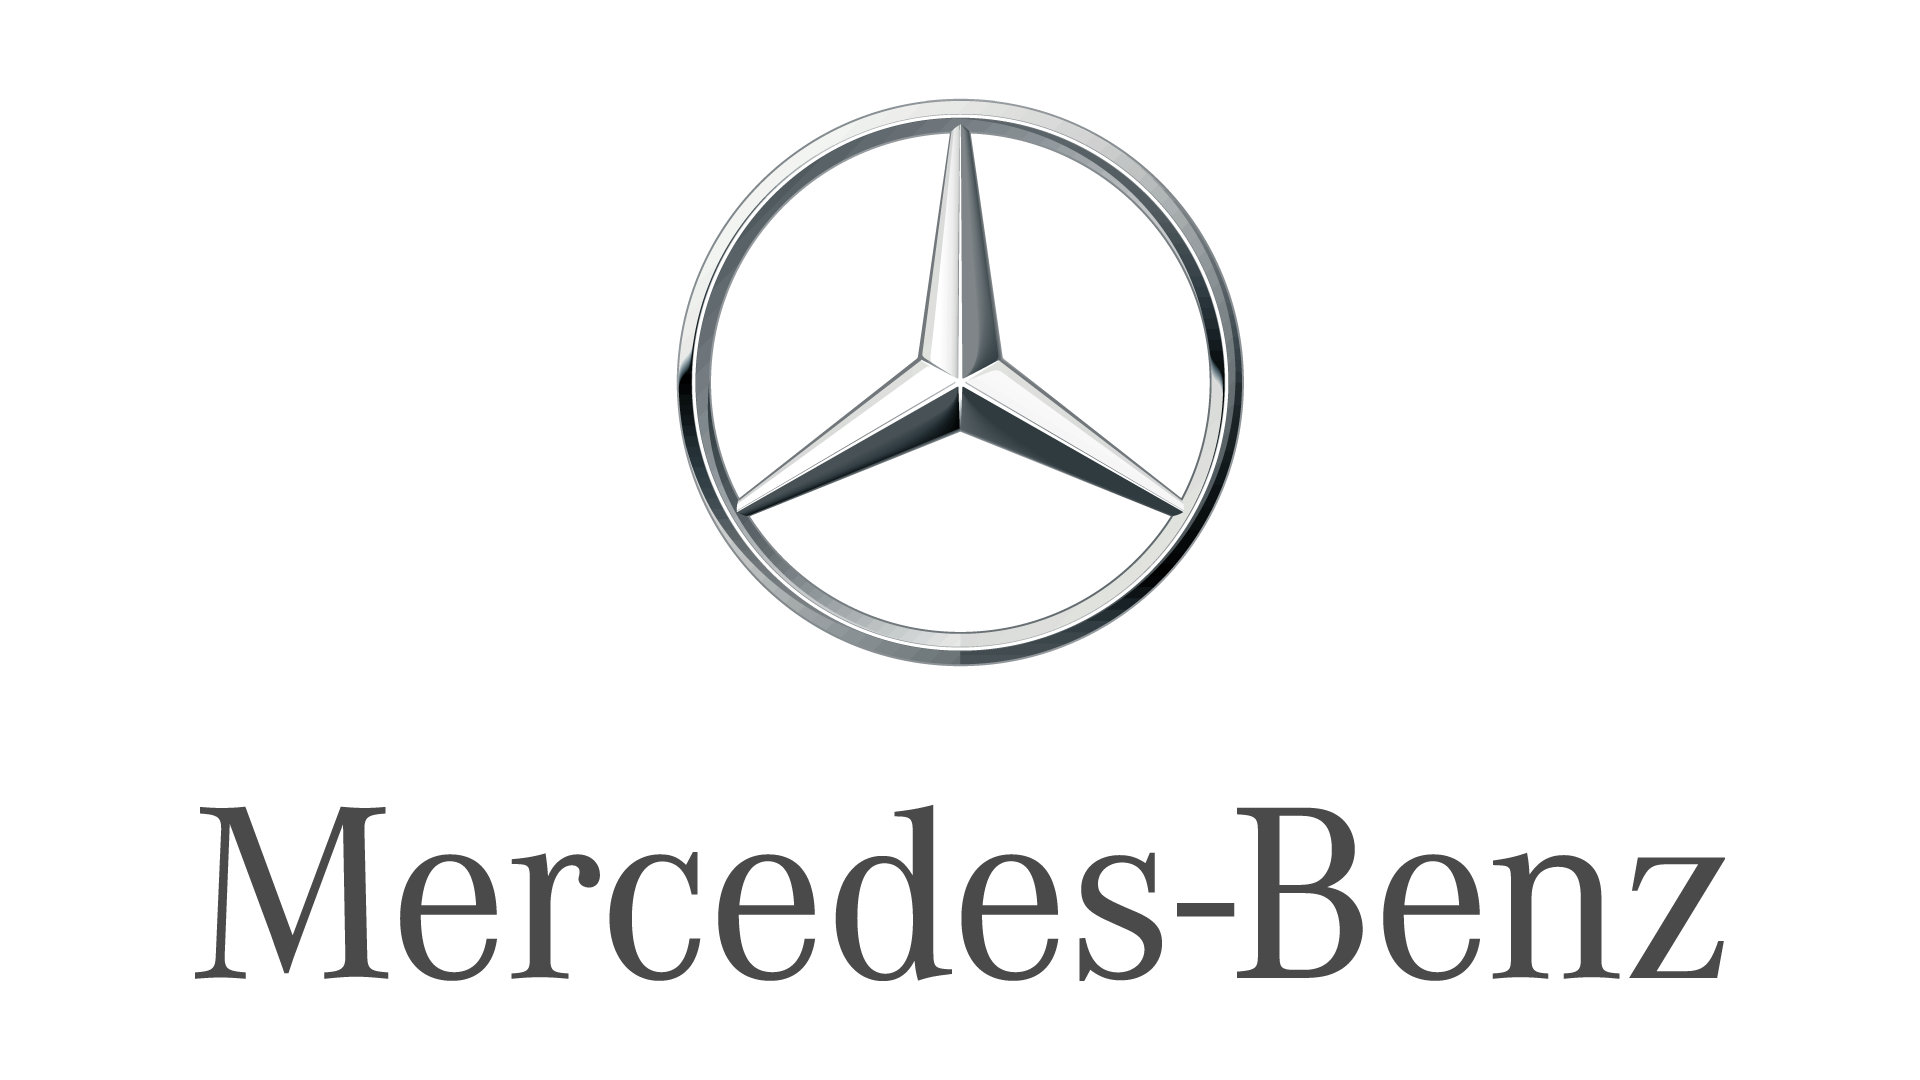 Mercedes Benz Live Streaming Australia.png